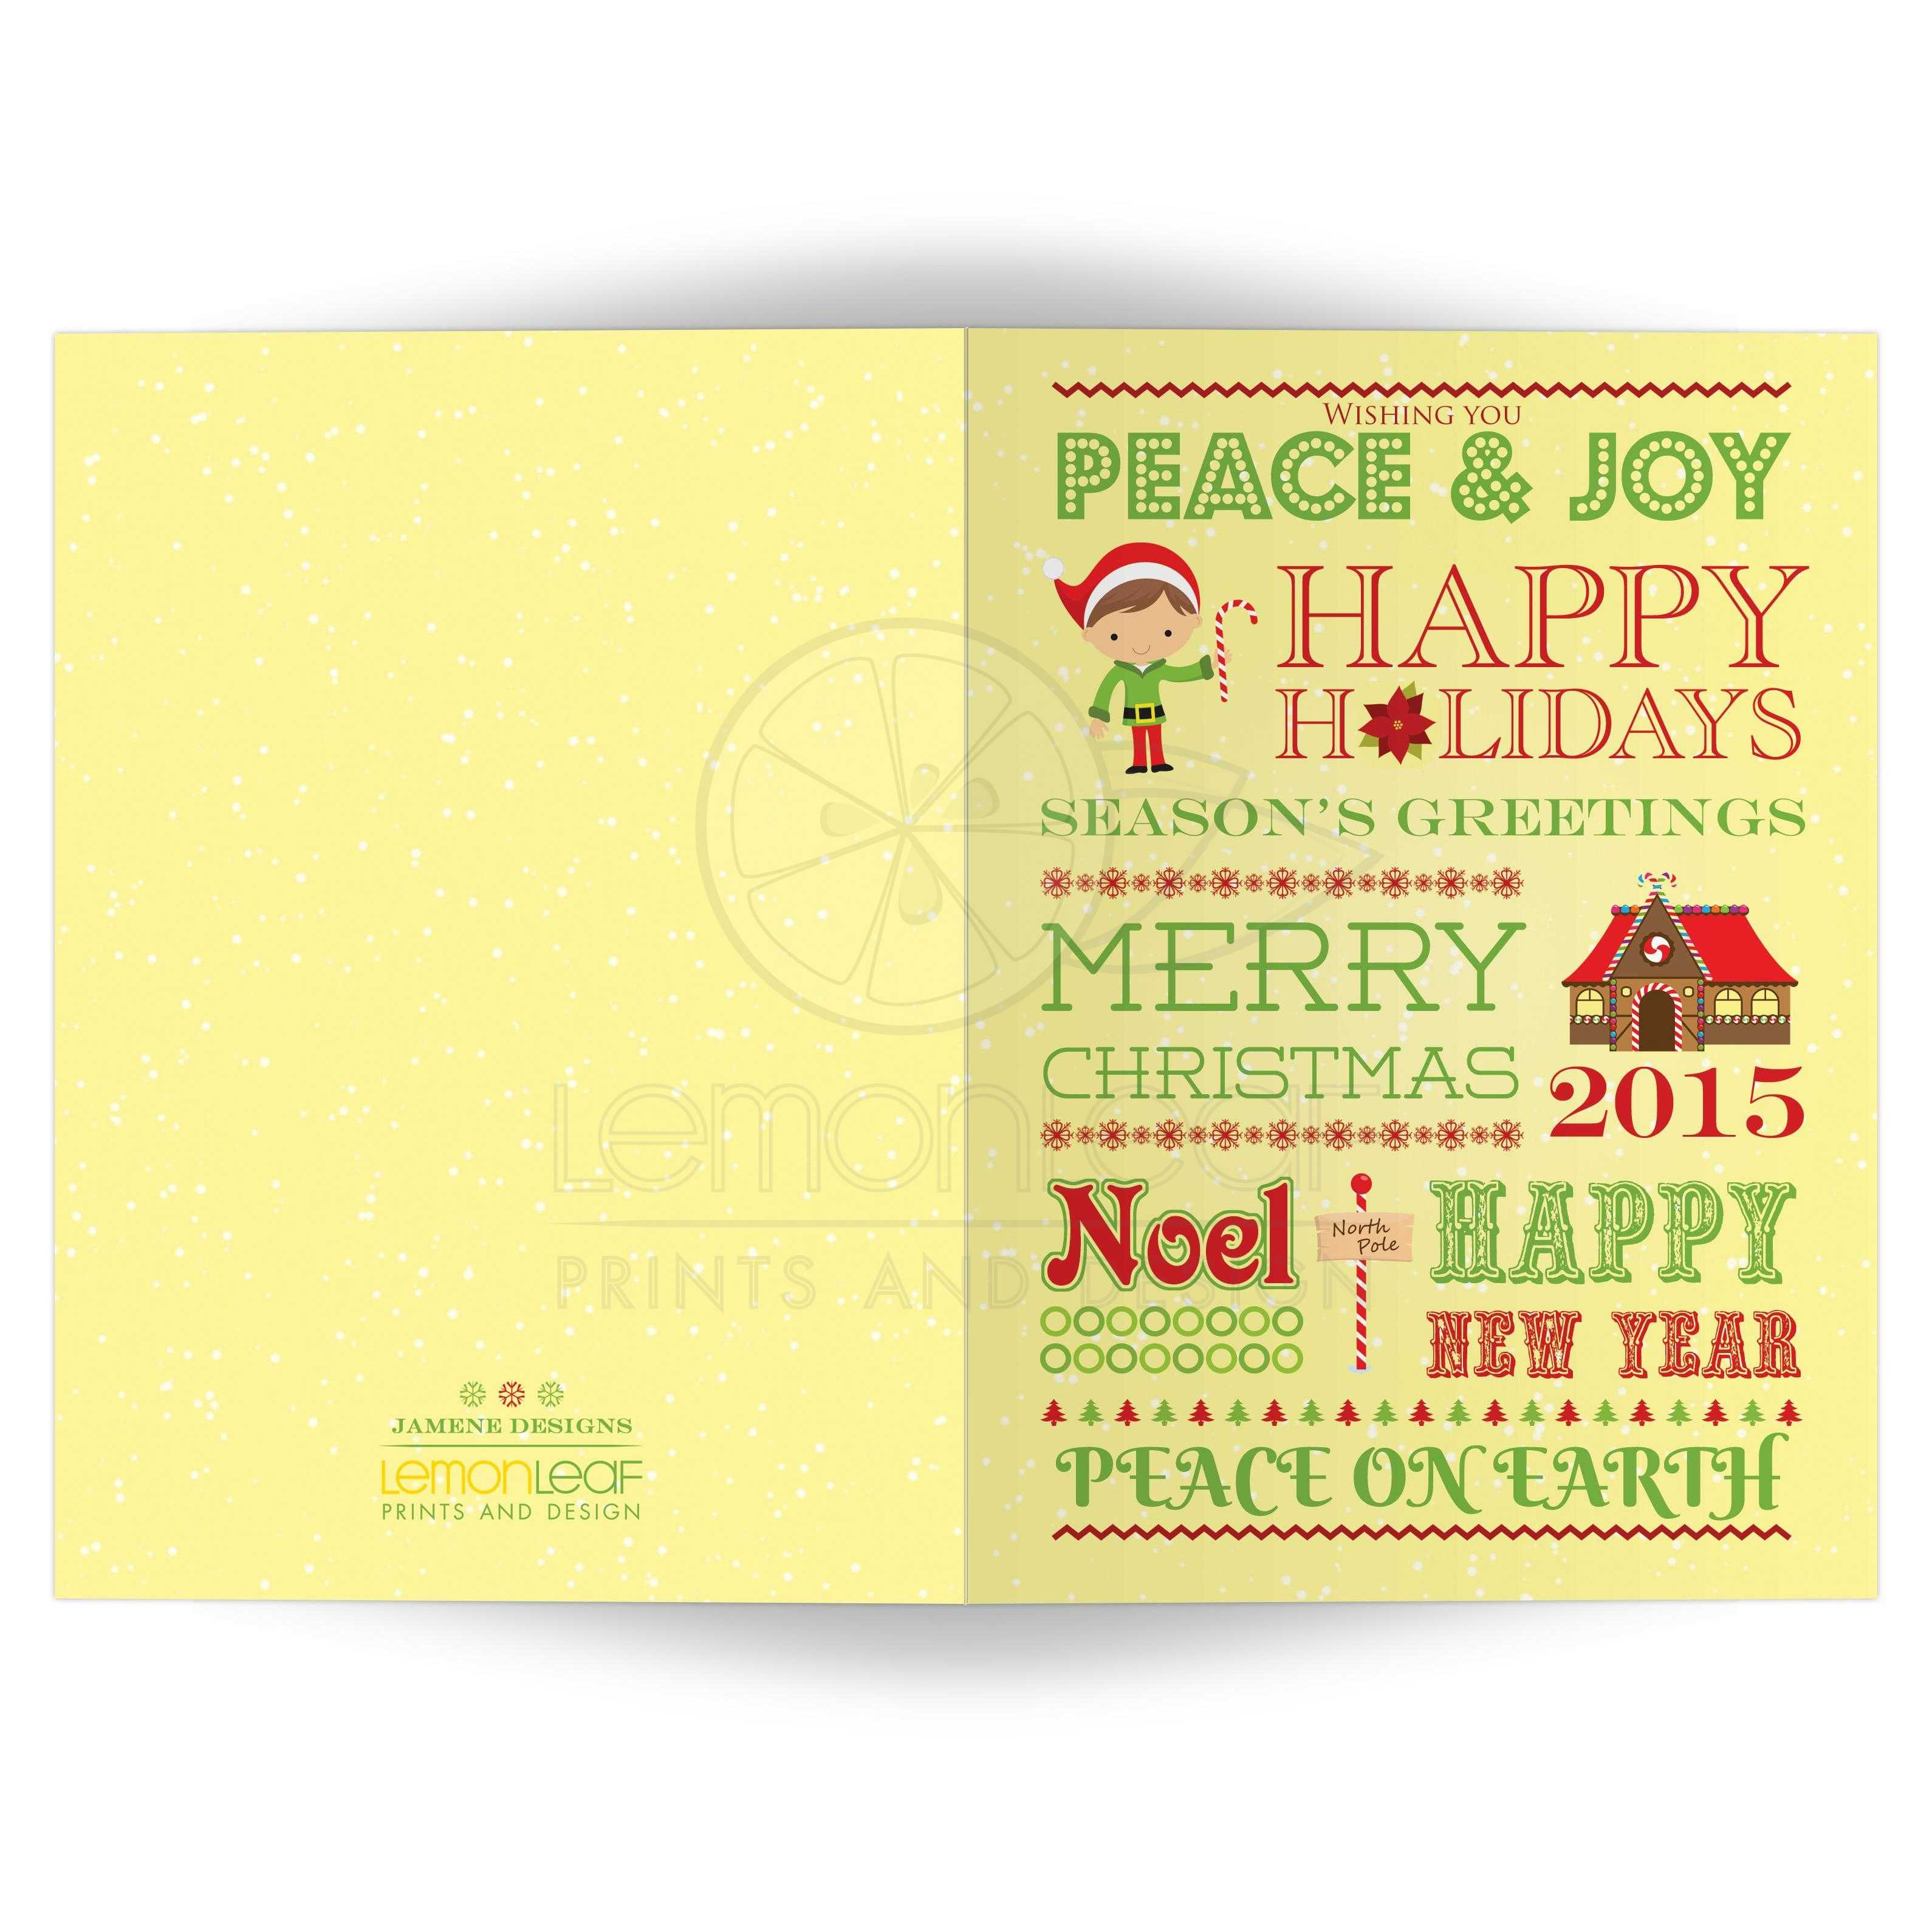 Christmas Holiday Card Festive Typography General Sayings